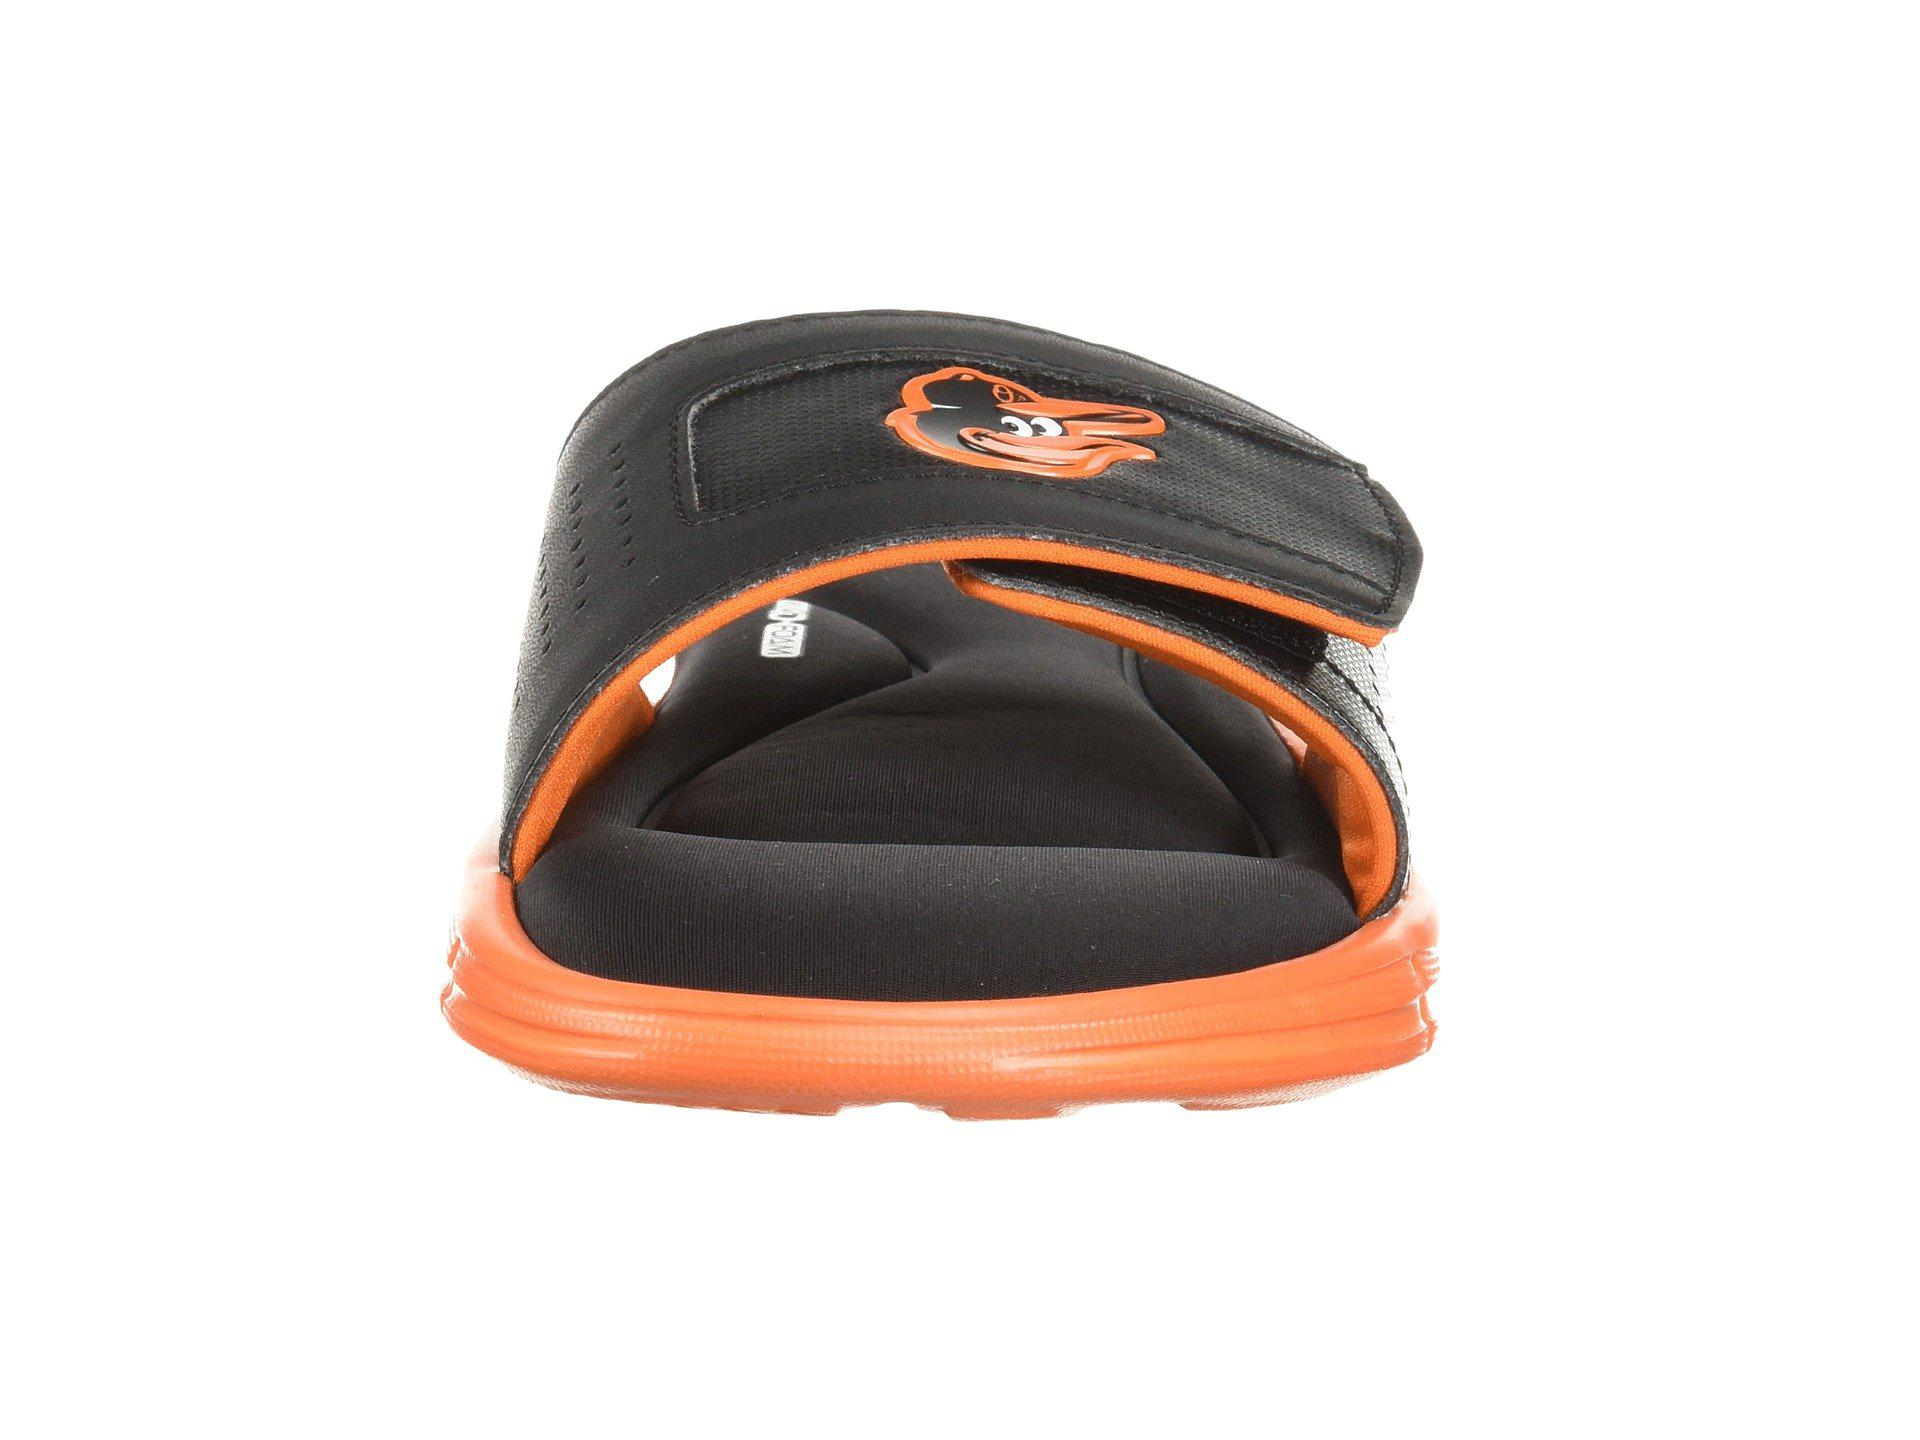 Under Armour Ignite MLB V SL Baltimore Orioles